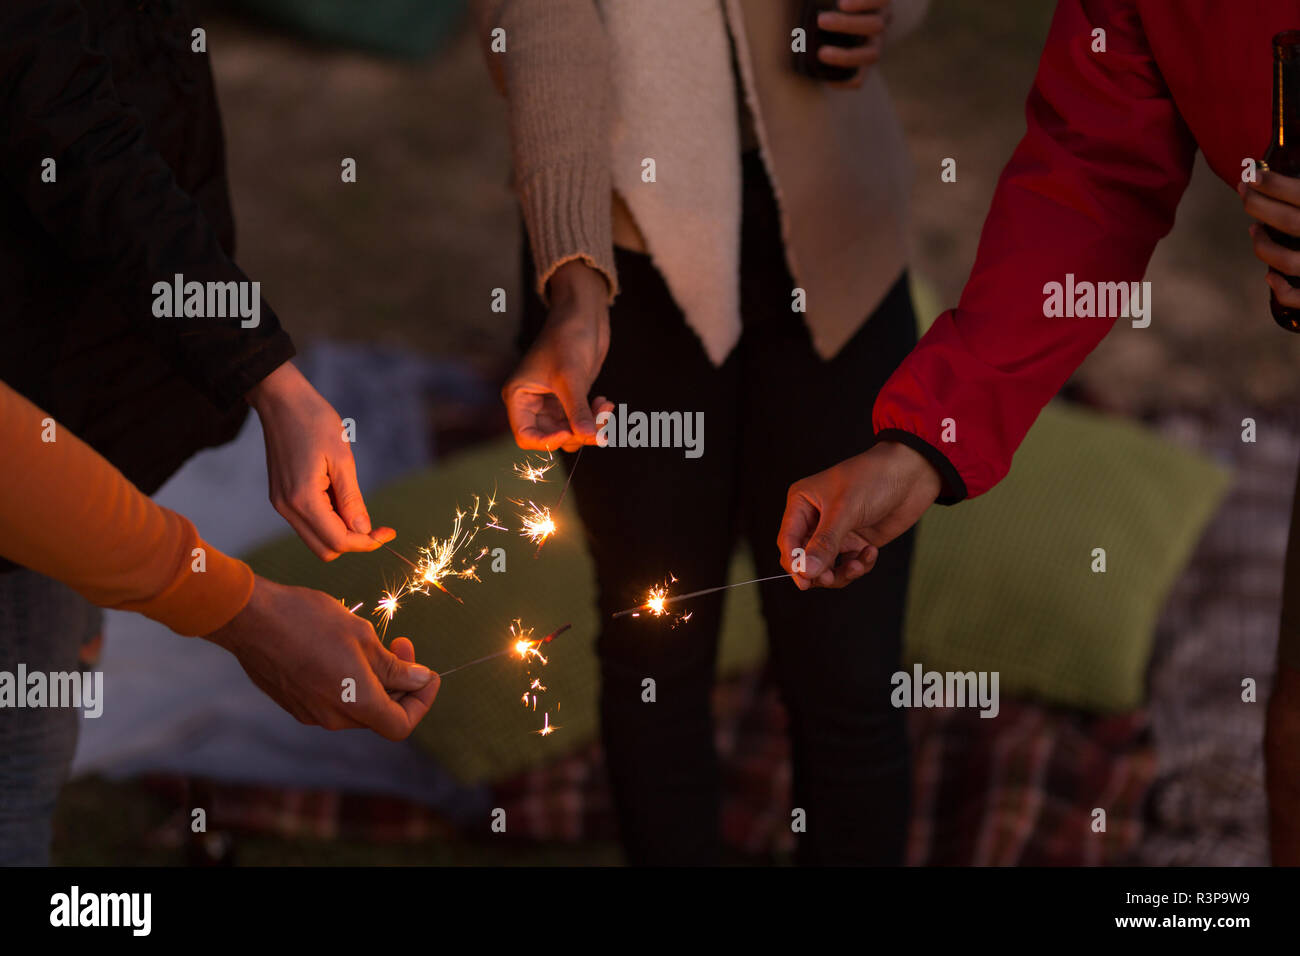 Group of friends having fun with sparklers - Stock Image